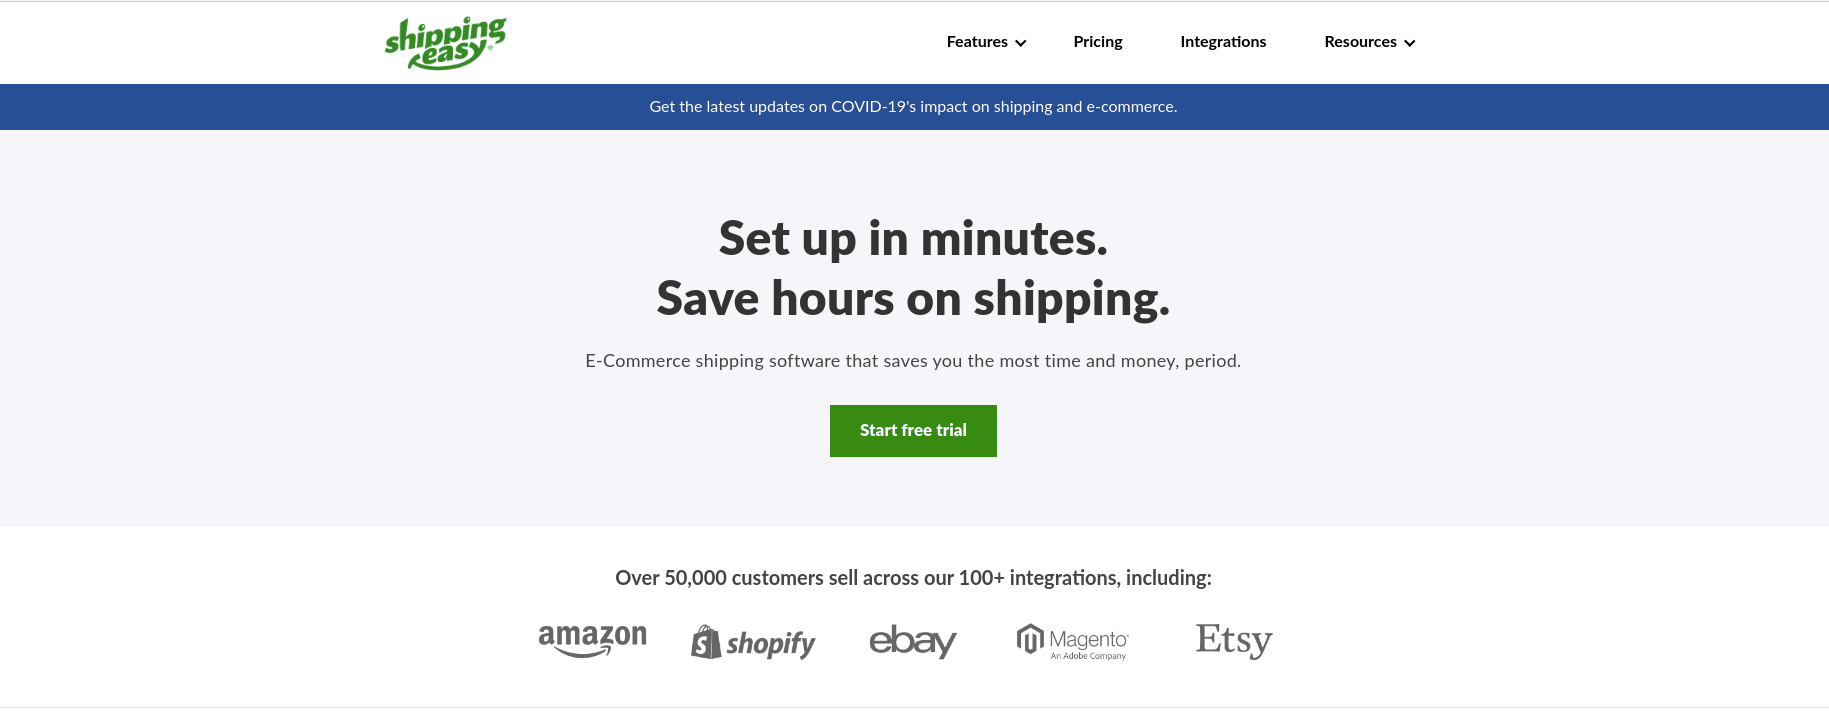 ShippingEasy Home Page